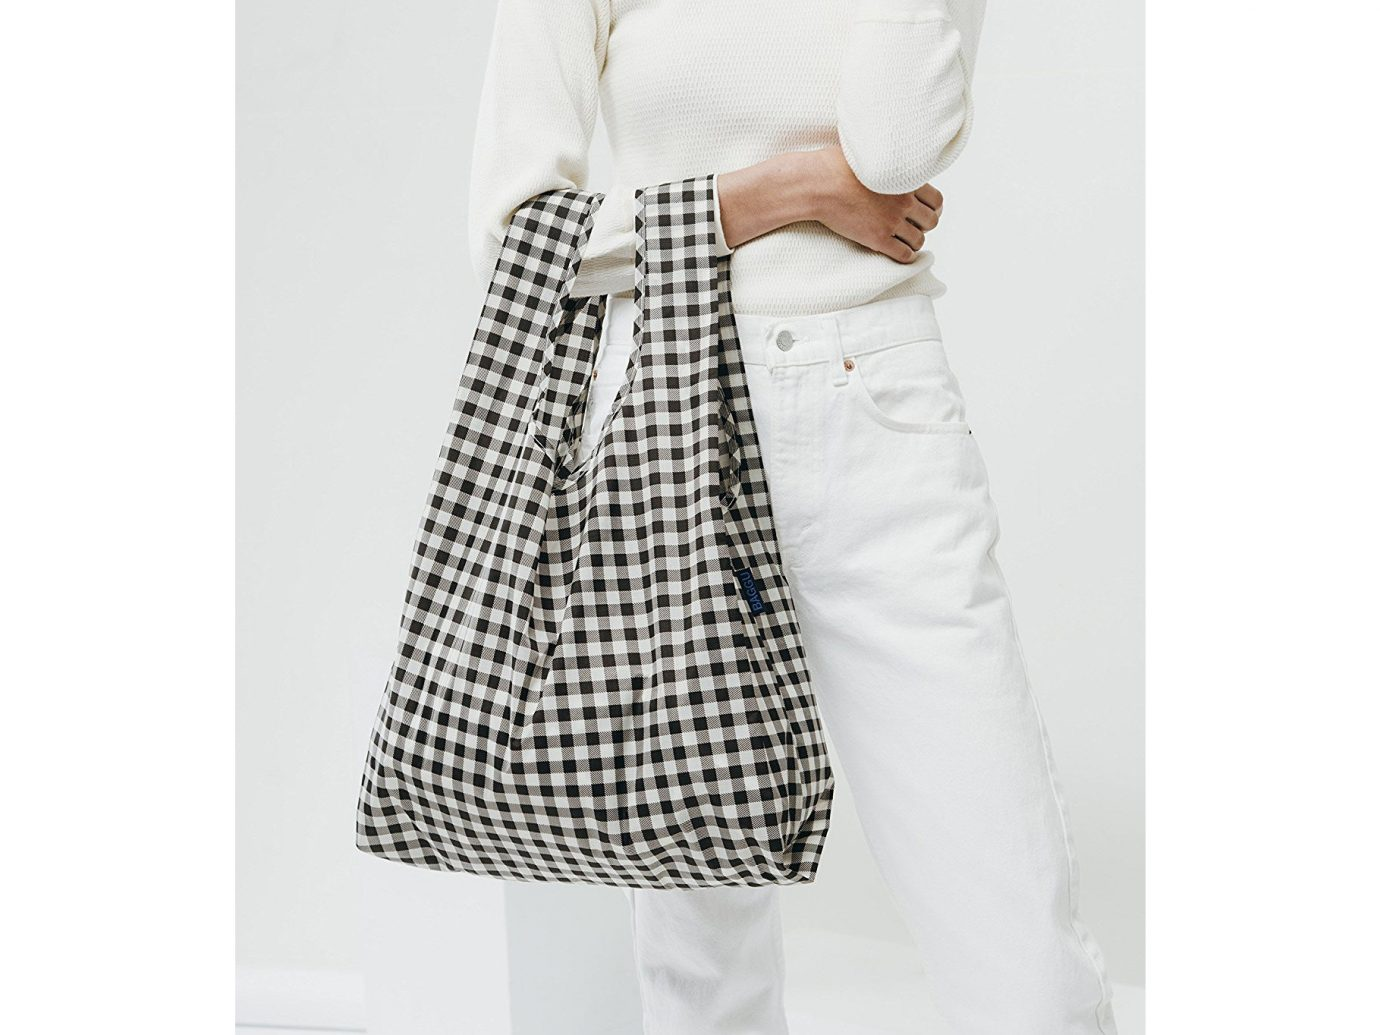 Japan Packing Tips Style + Design Travel Shop person white clothing wall posing shoulder wearing waist joint pocket dress pattern plaid product dressed